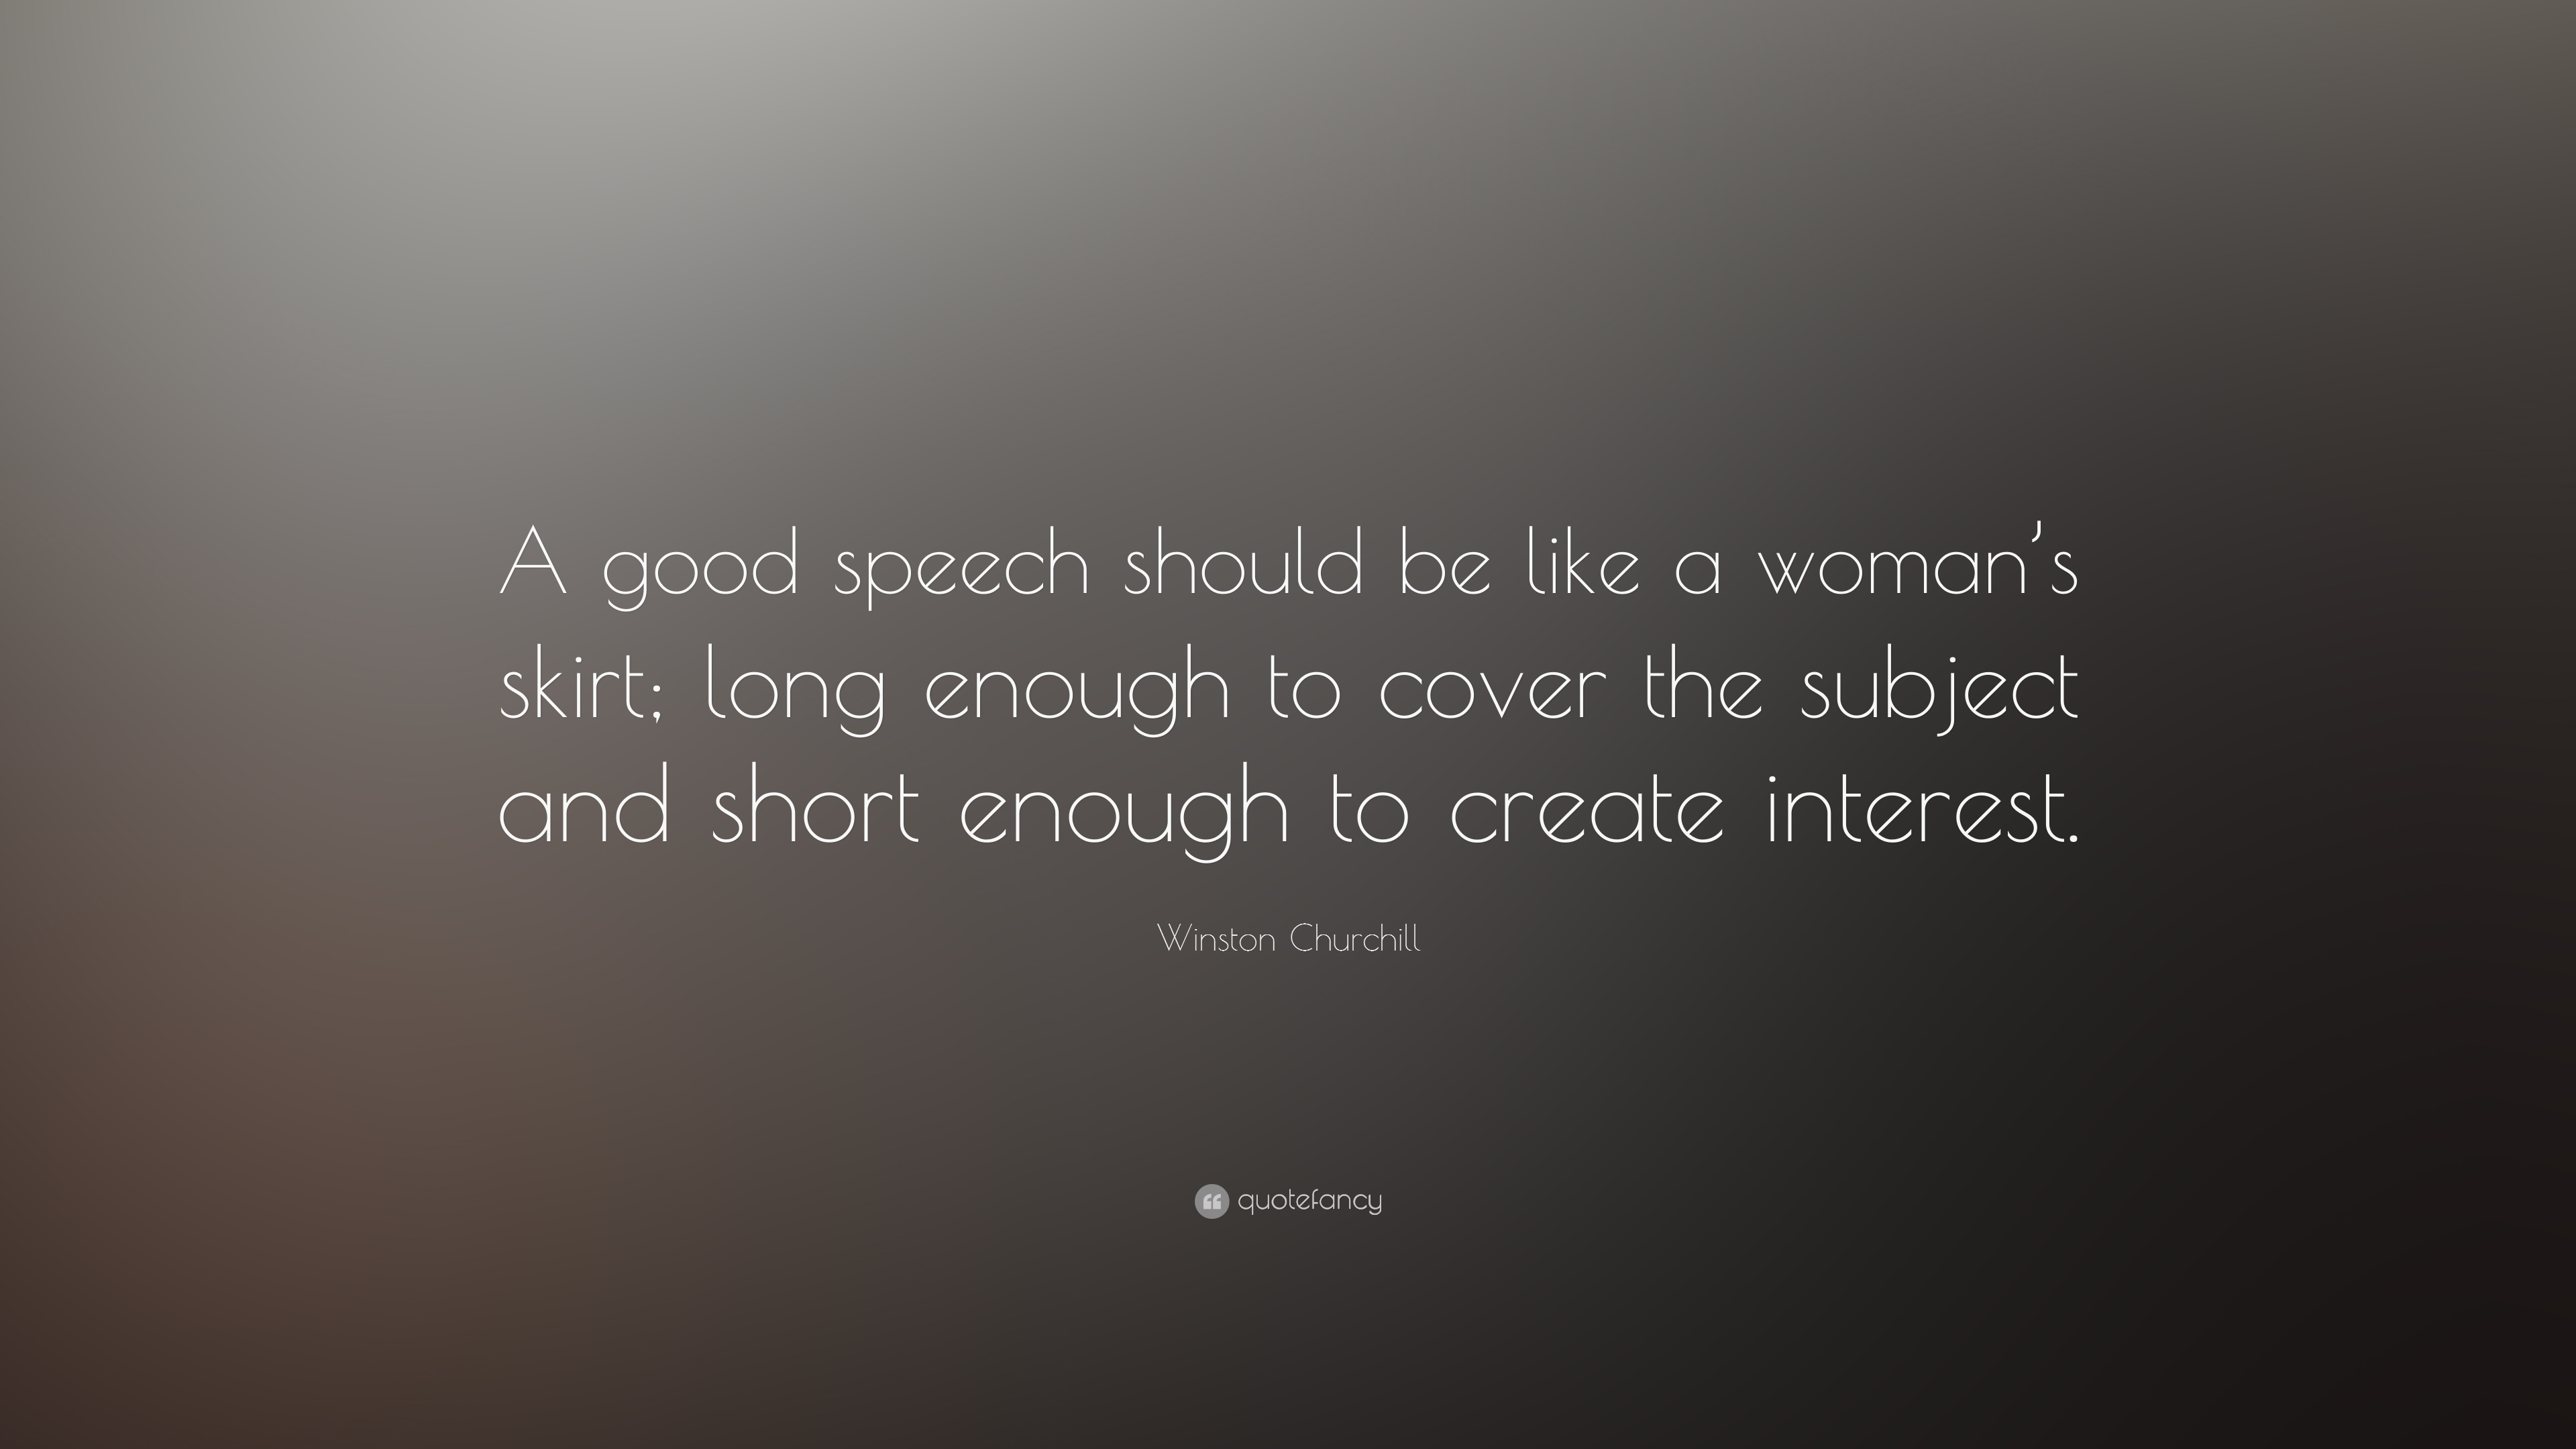 winston churchill quote a good speech should be like a w s winston churchill quote a good speech should be like a w s skirt long